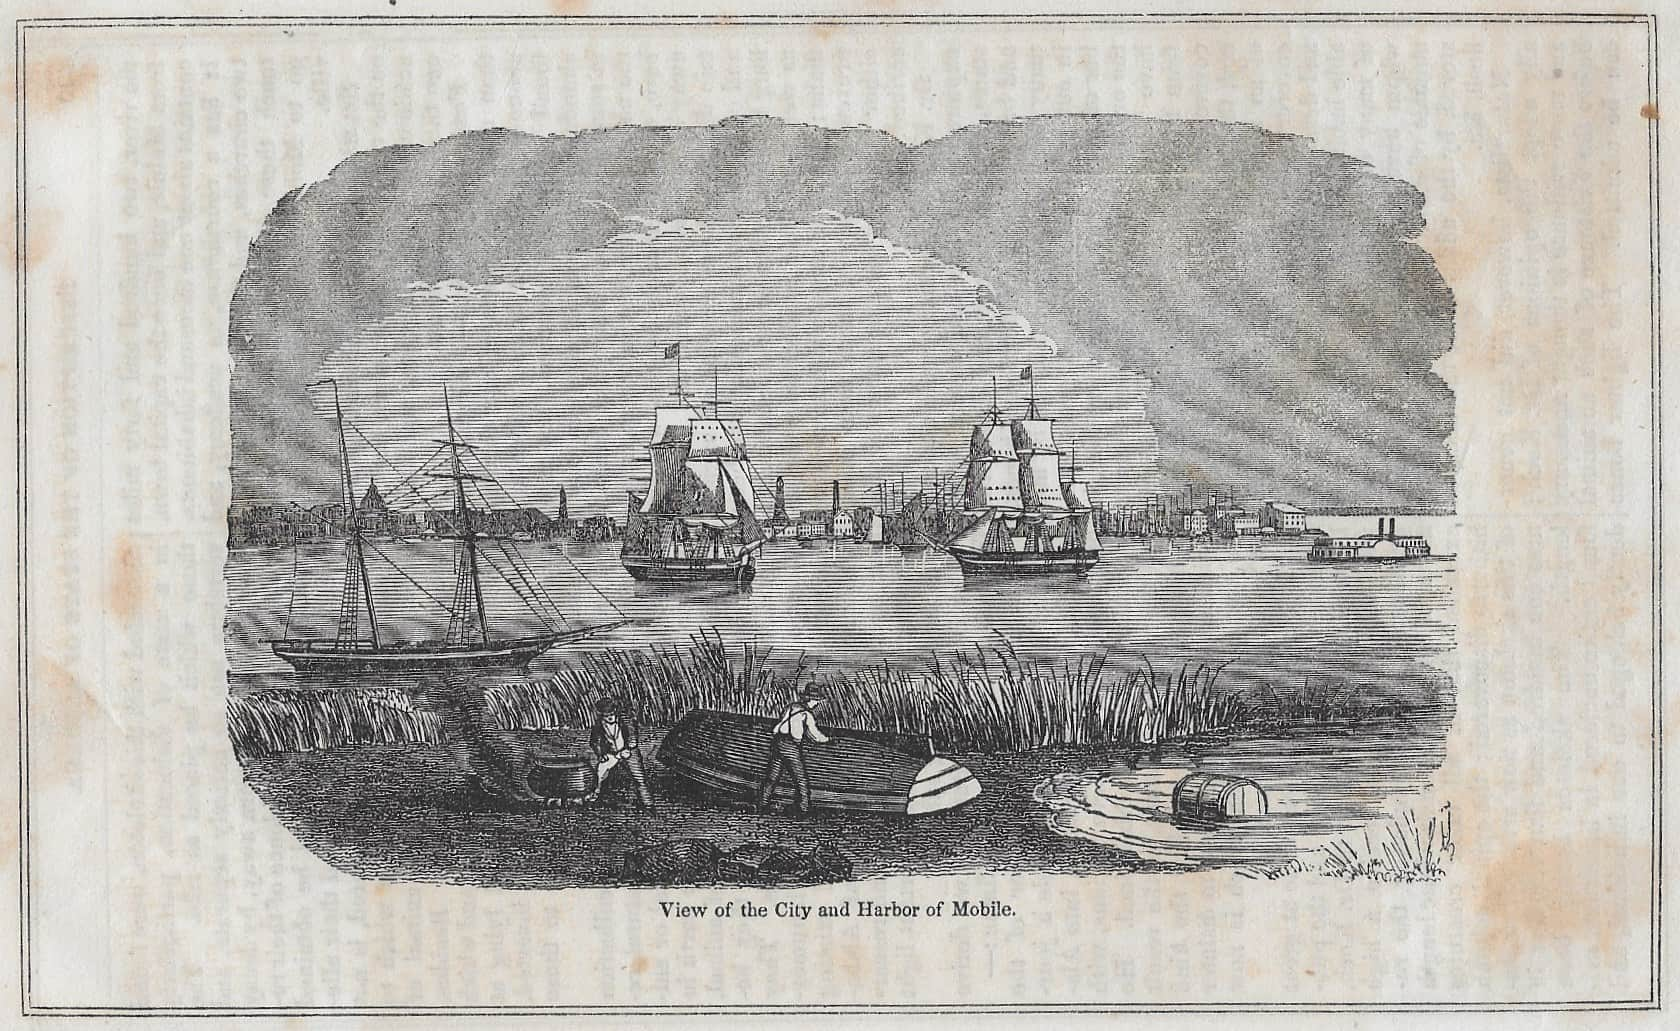 View of City and Harbor of Mobile 1874